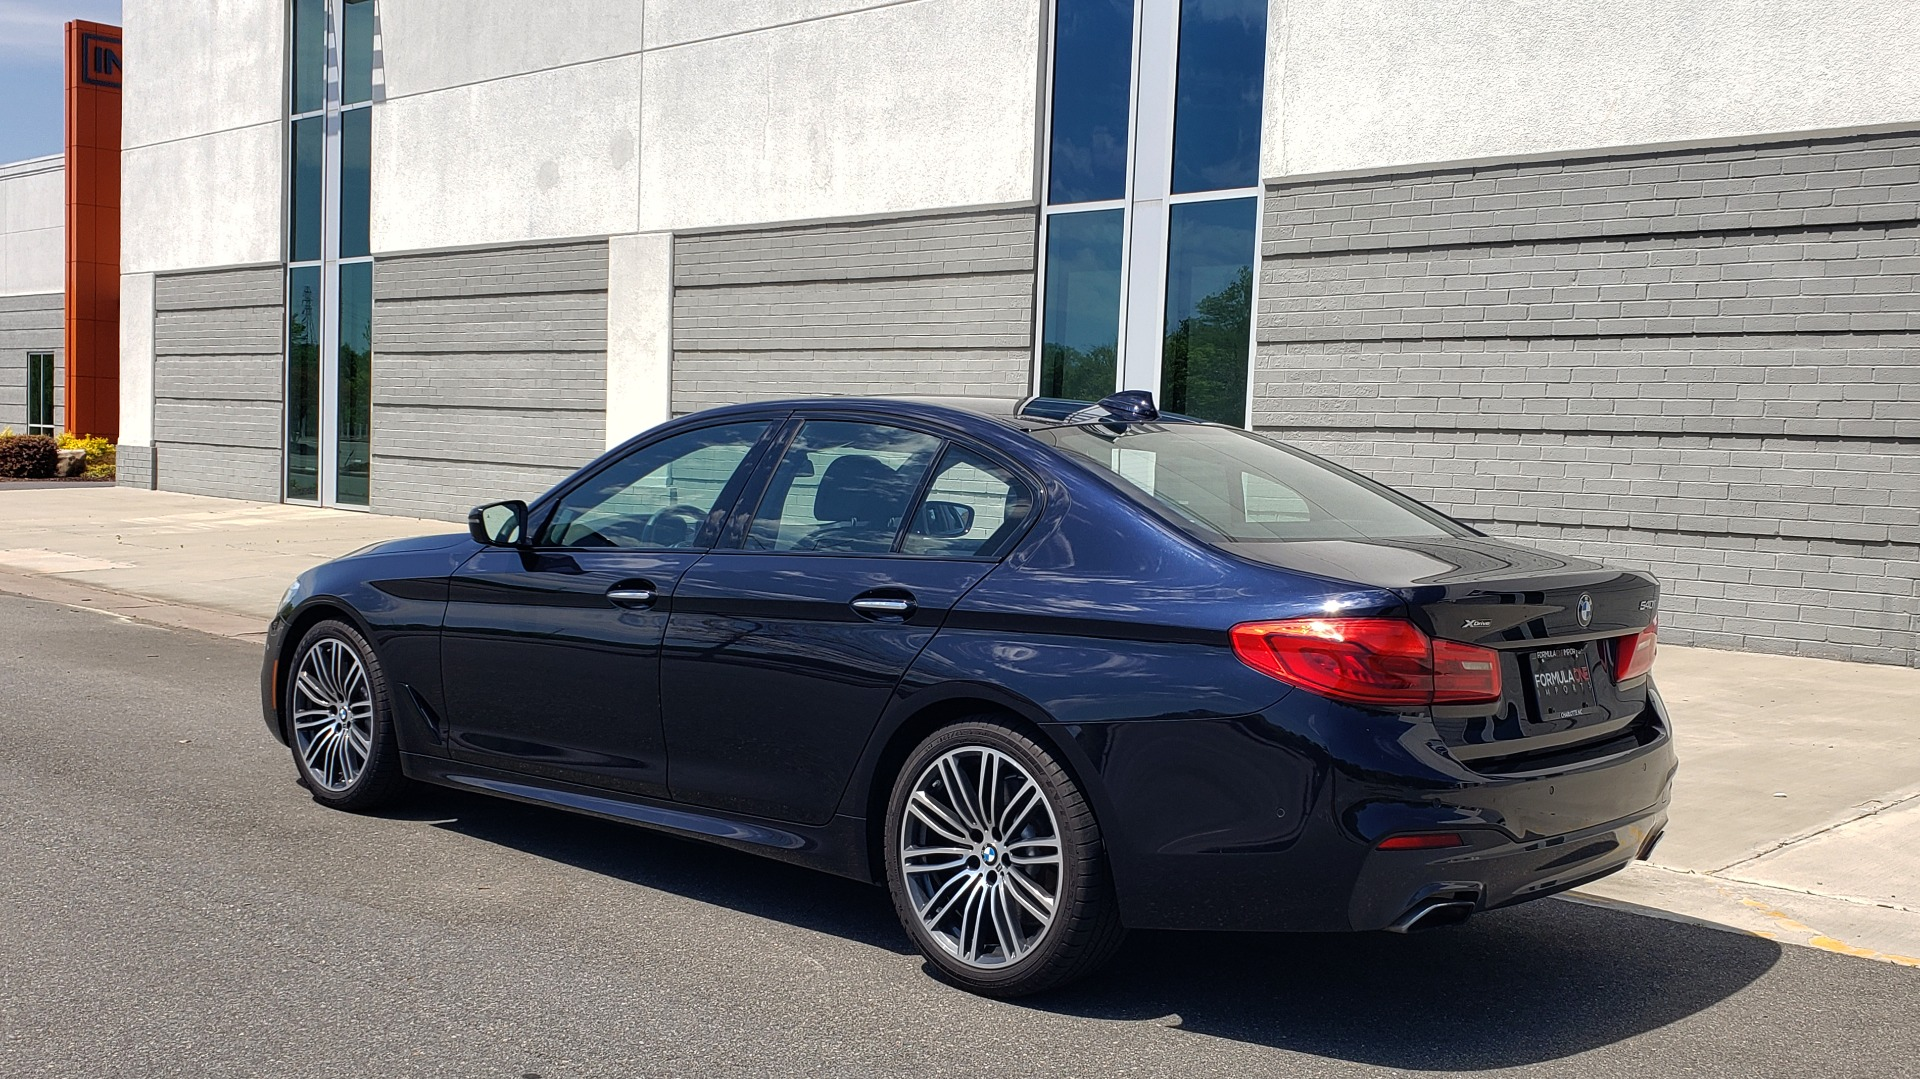 Used 2017 BMW 5 SERIES 540I XDRIVE M-SPORT / PREMIUM / DRVR ASST PLUS / CLD WTHR / LUXURY for sale Sold at Formula Imports in Charlotte NC 28227 8